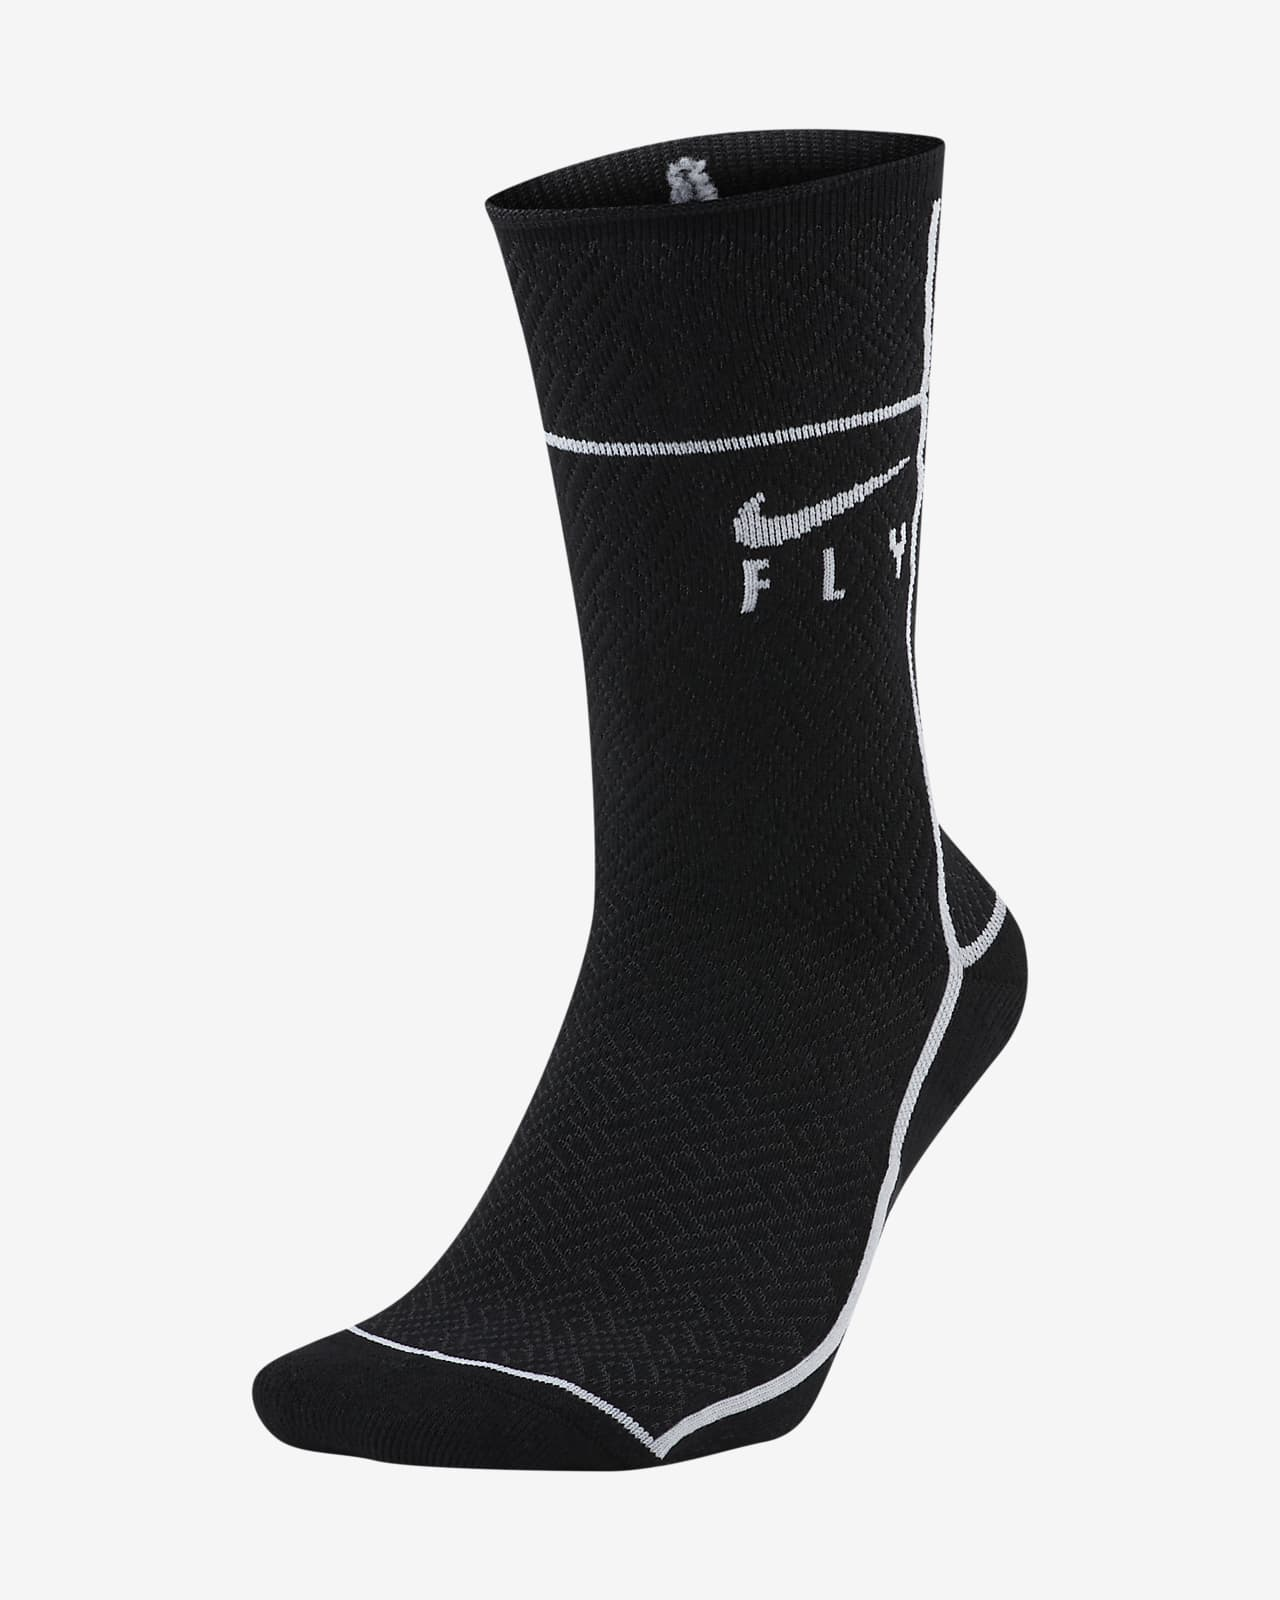 Nike SNKR SOX Swoosh Fly Basketball Crew Socks